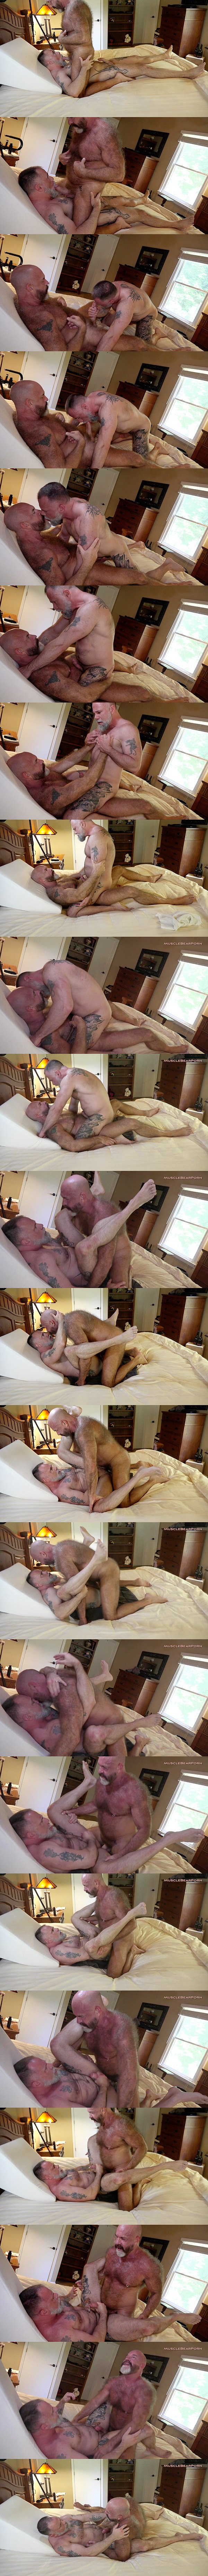 Musclebearporn - sexy hairy daddy Mack Austin barebacks muscle bear bottom Liam Angell in cowboy and missionary style until he fucks the cum out of Liam in Daddy Collector 02